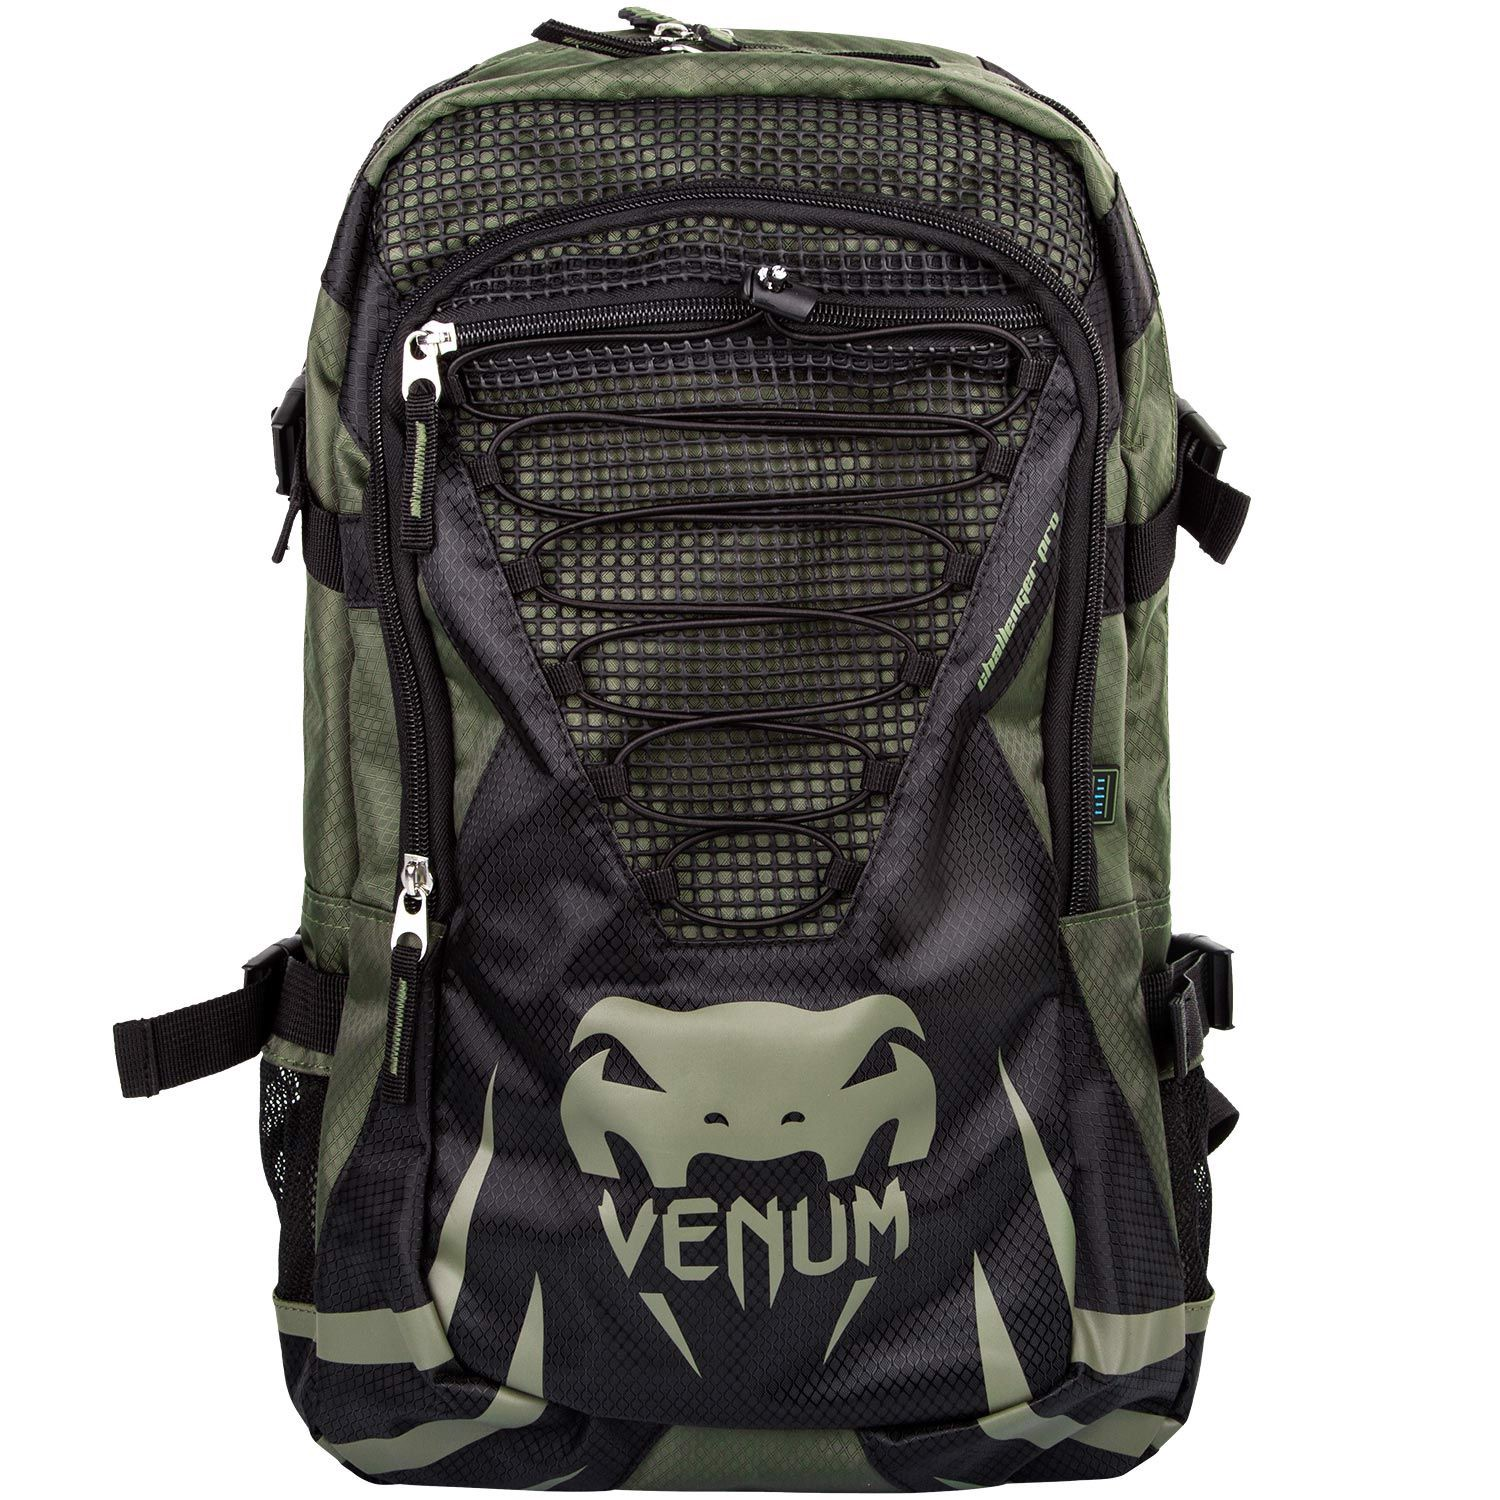 Balo Venum Challenger Pro Backpack - Khaki/Black